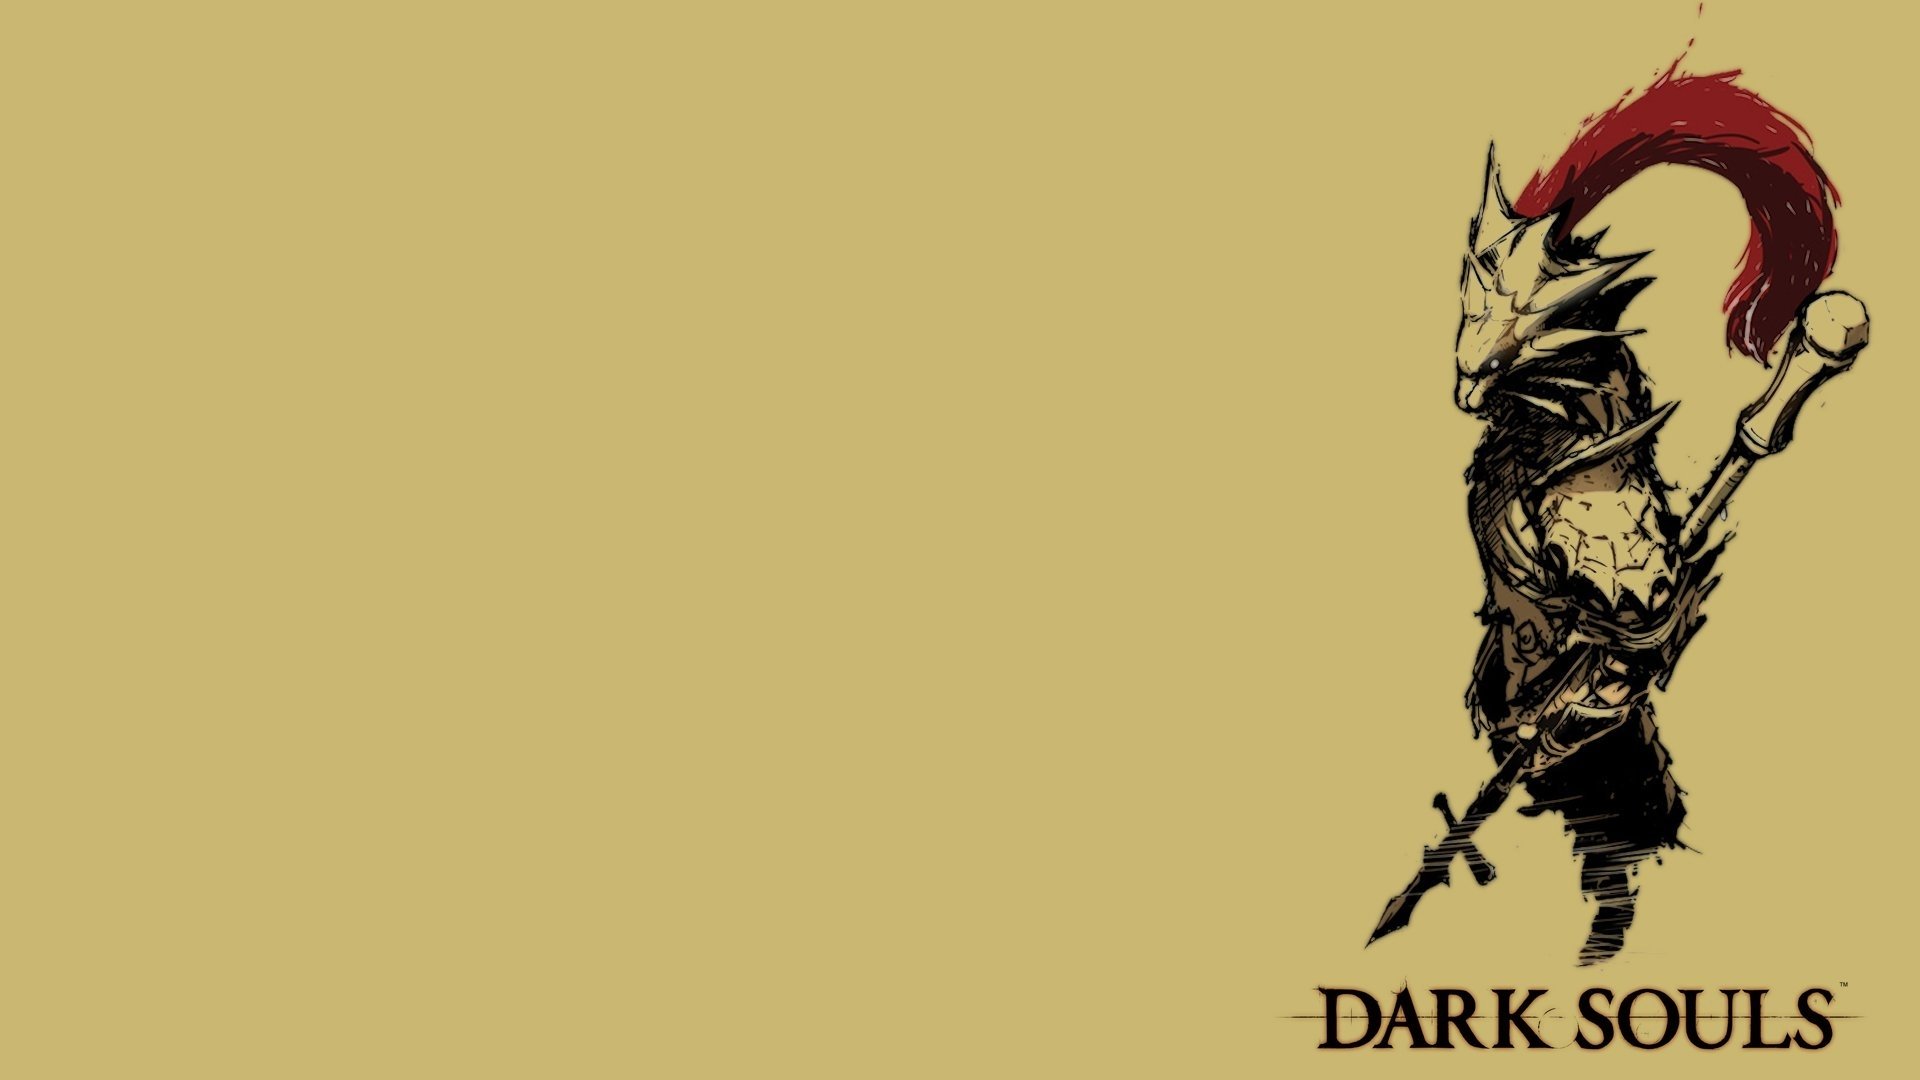 3 dragon slayer ornstein hd wallpapers | background images